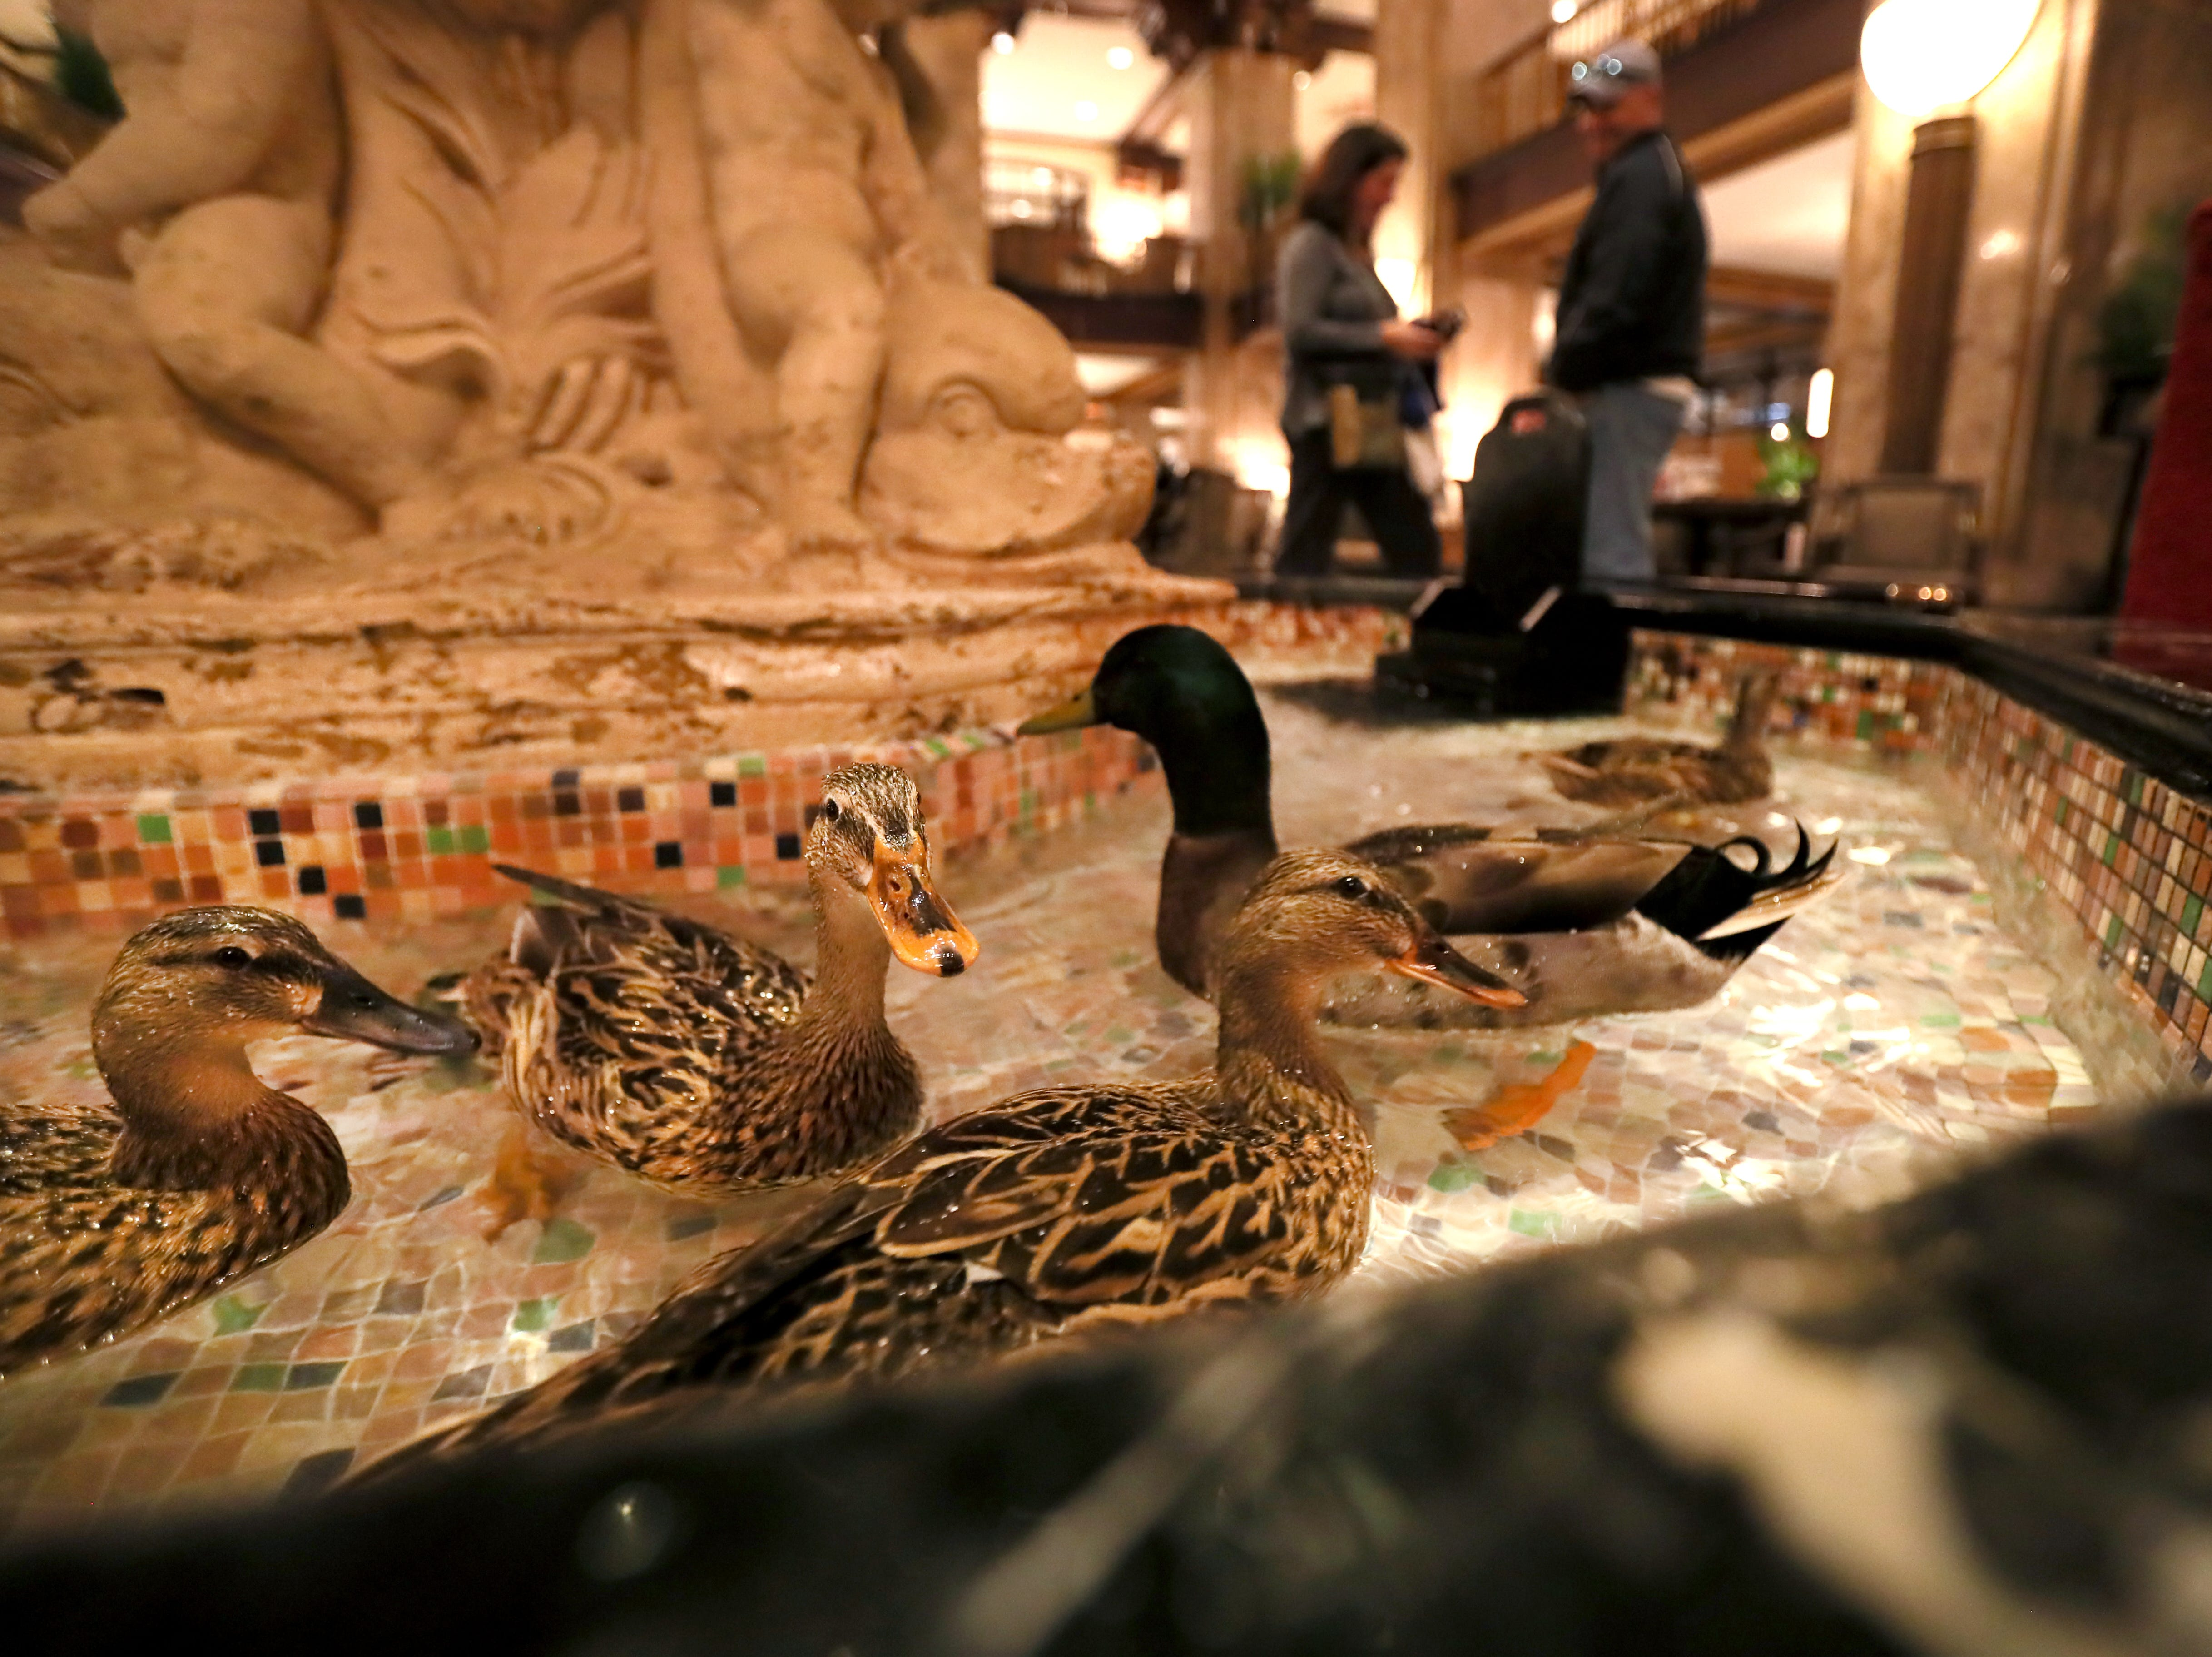 Ducks fill the fountain in the center of the lobby at the Peabody Hotel in downtown Memphis on Thursday, Feb. 21, 2019.